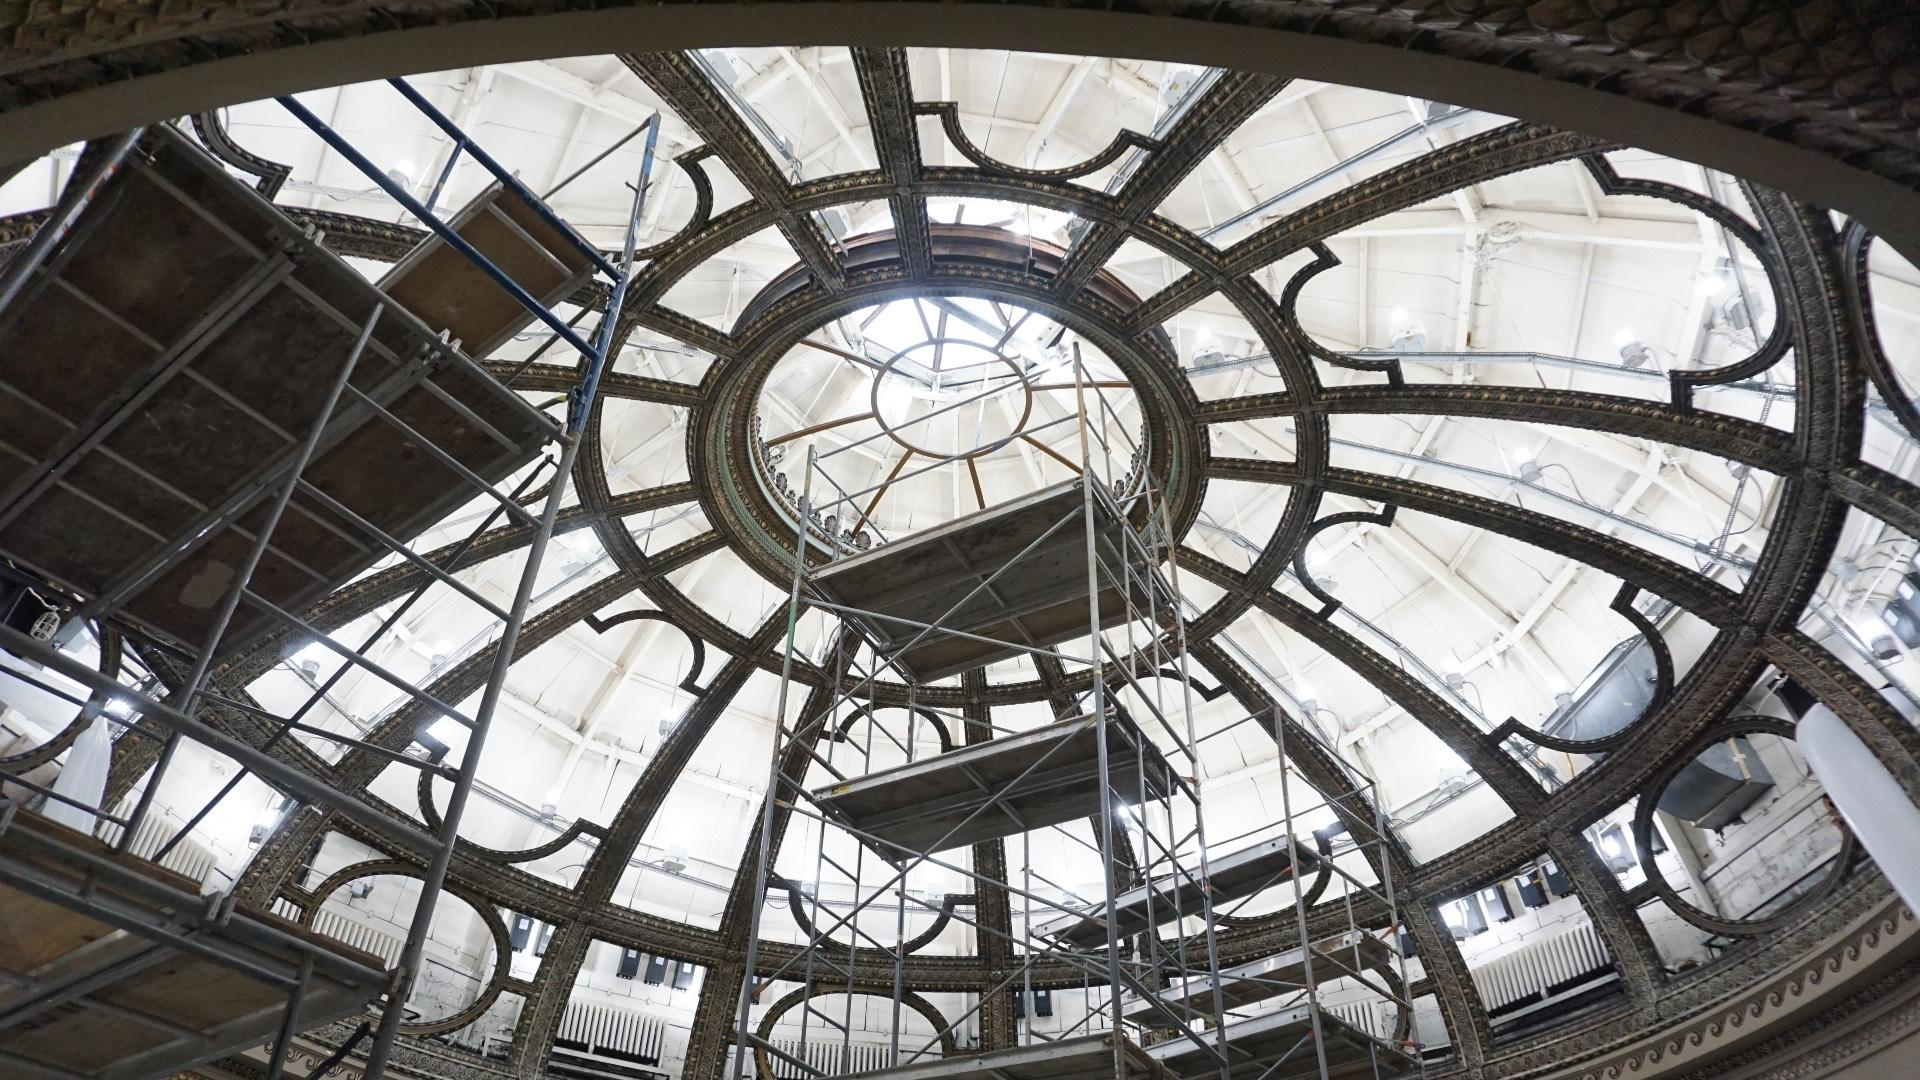 The dome's 62,000 pieces of glass have been removed for restoration and will be reinstalled. (Courtesy of Harboe Architects)